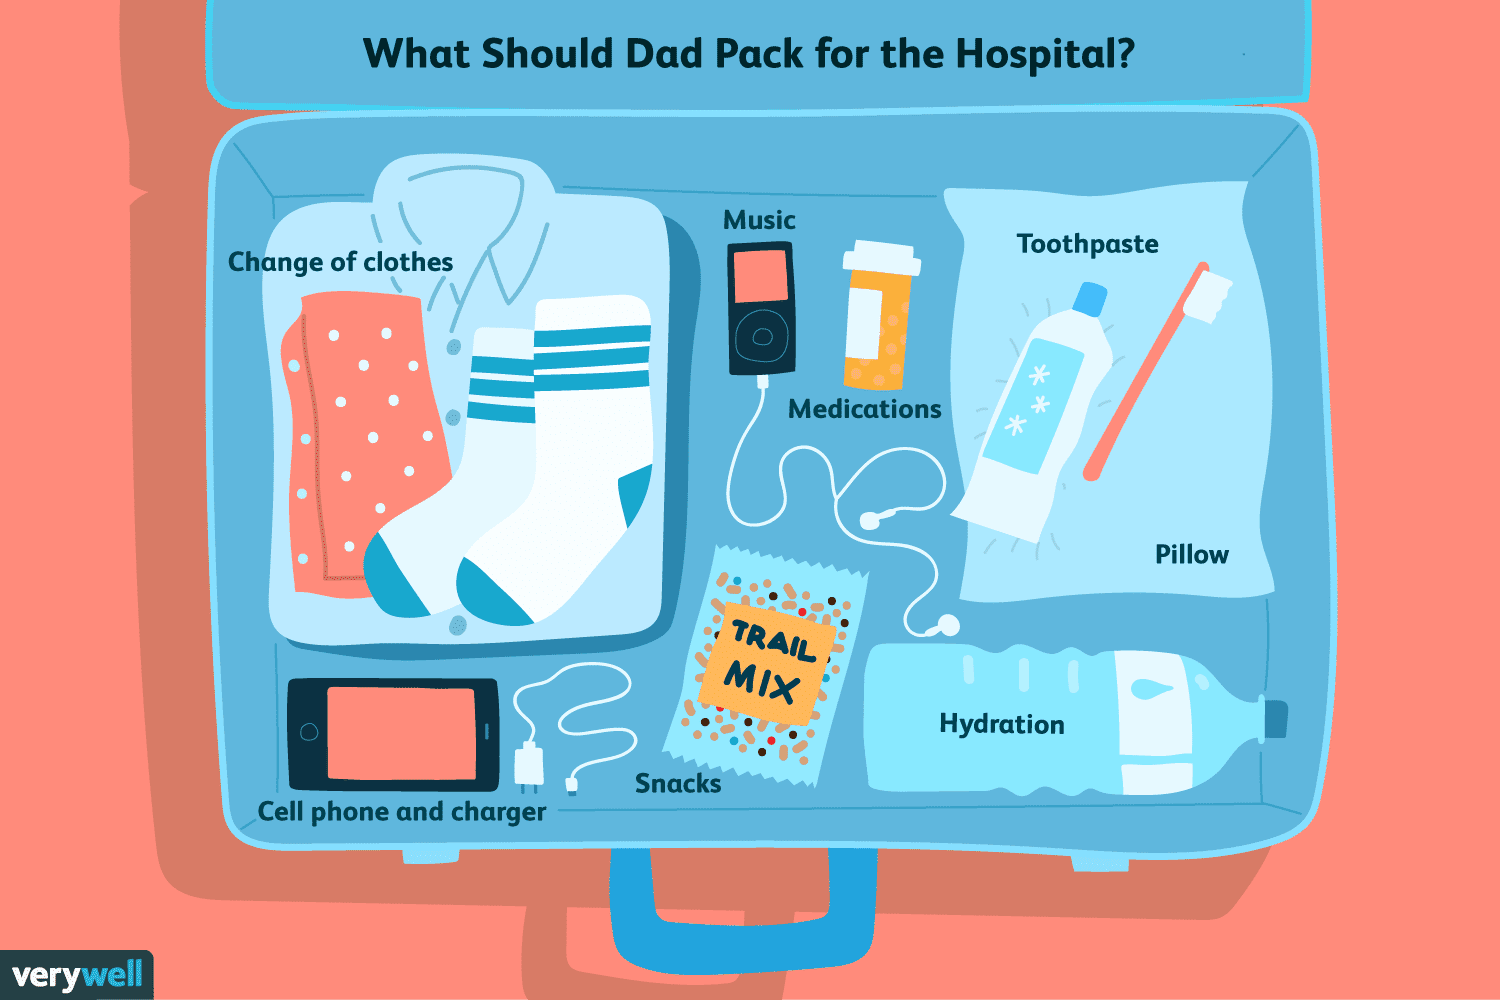 How should dad pack for the hospital?